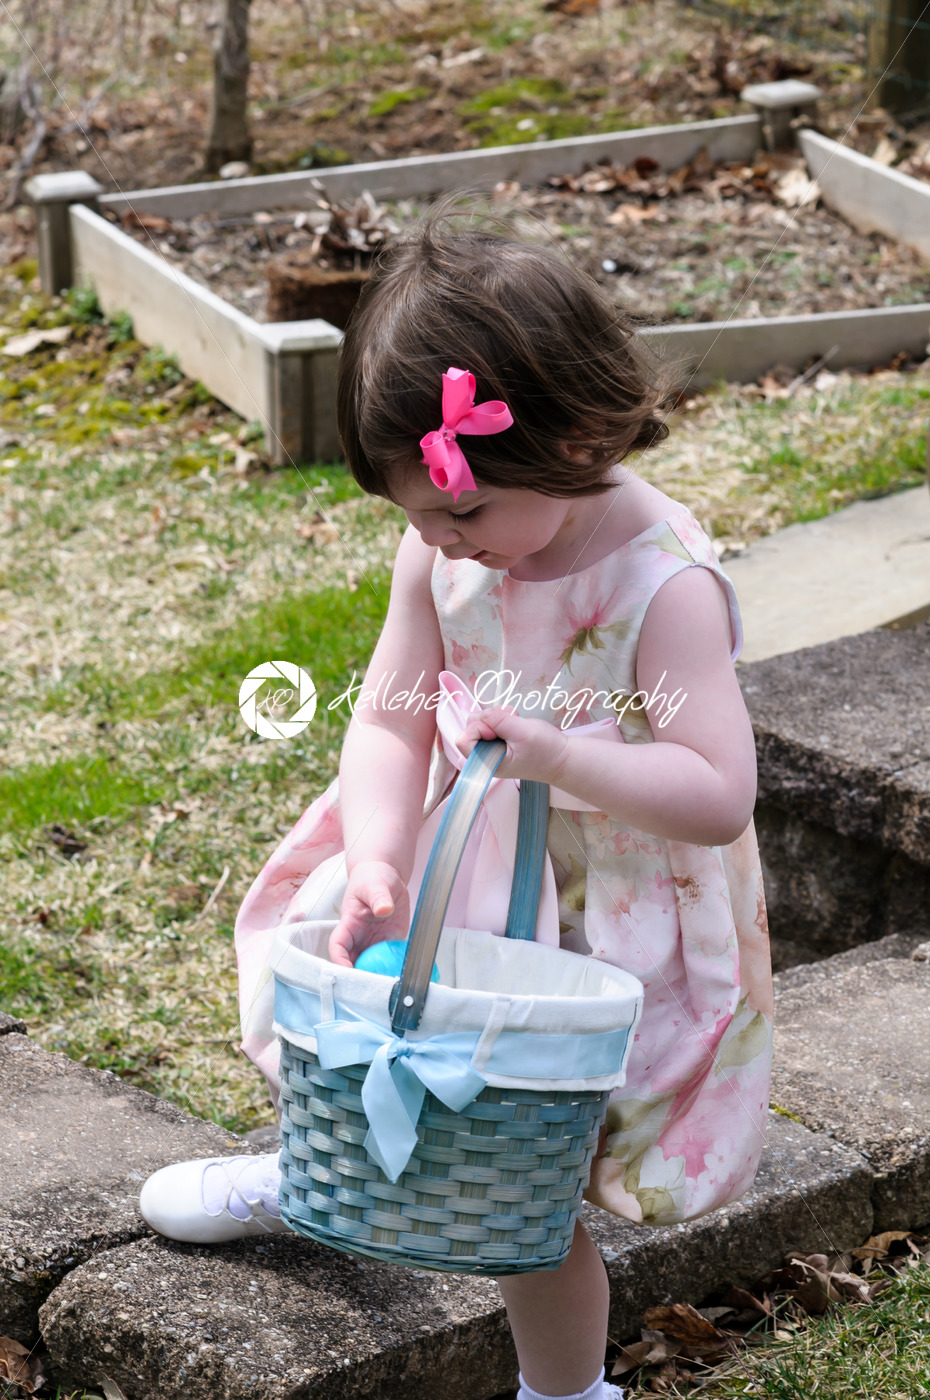 Young Girl Outside Dressed Up for Easter holding Basket - Kelleher Photography Store